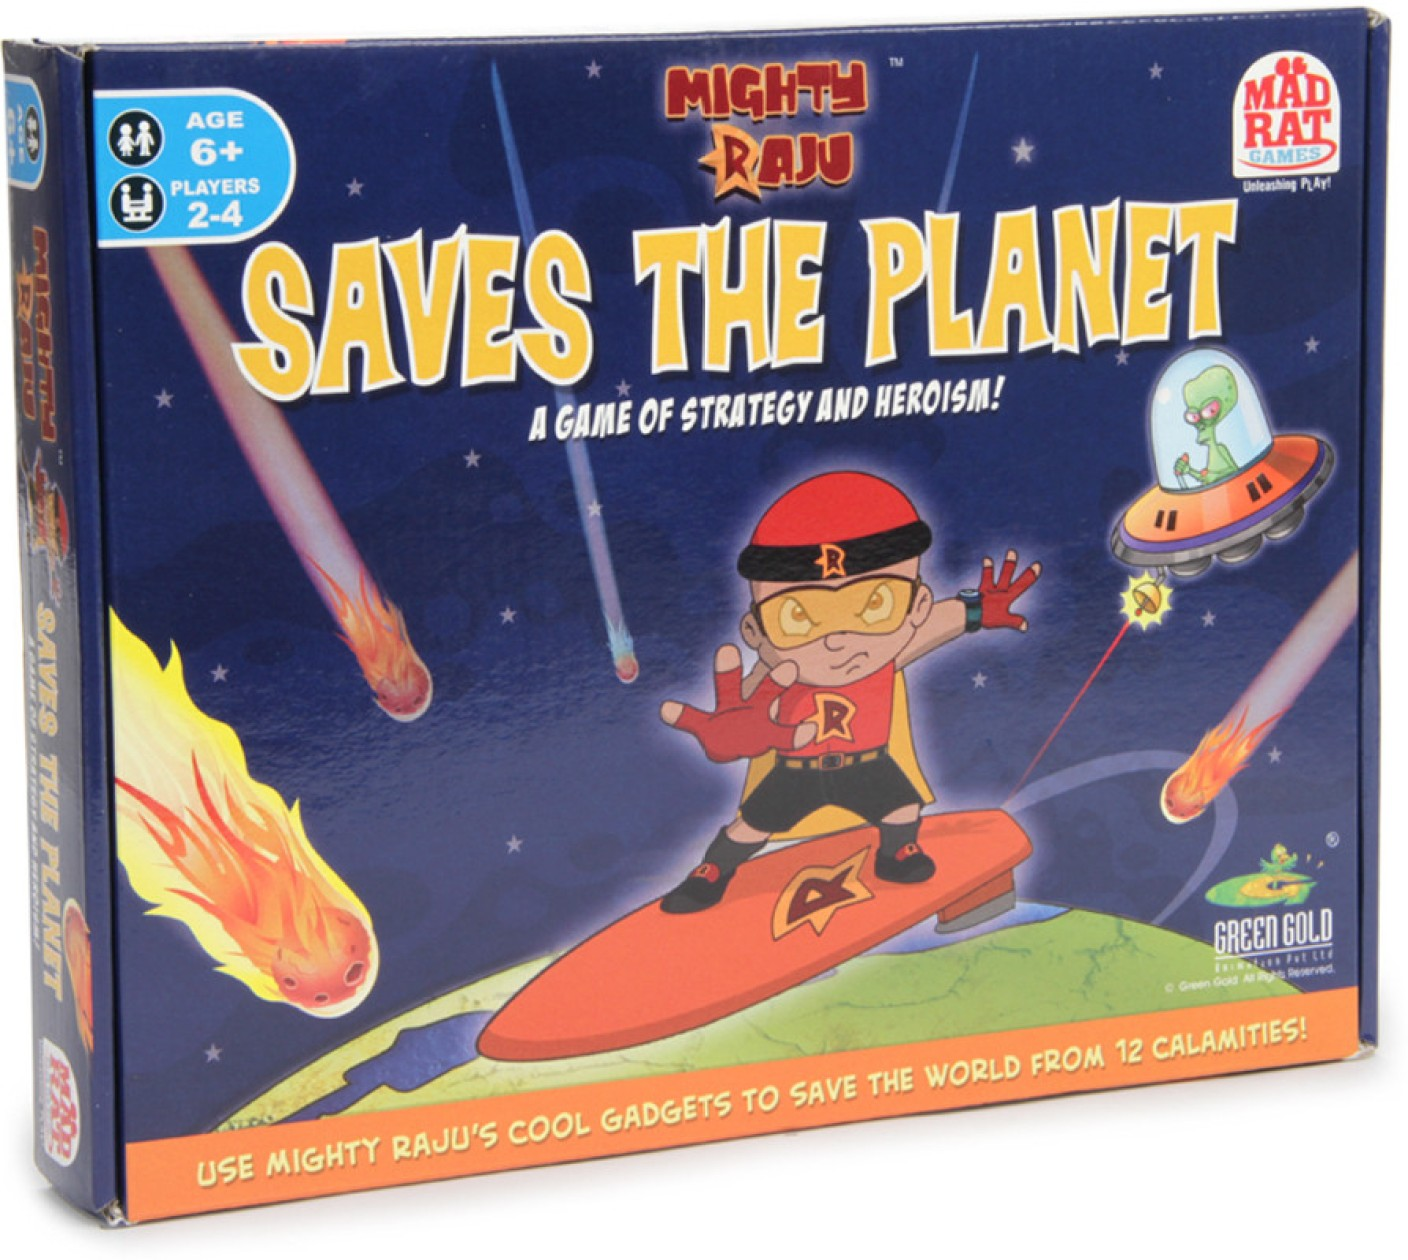 MadRat Games Mighty Raju Saves the Planet Board Game ...